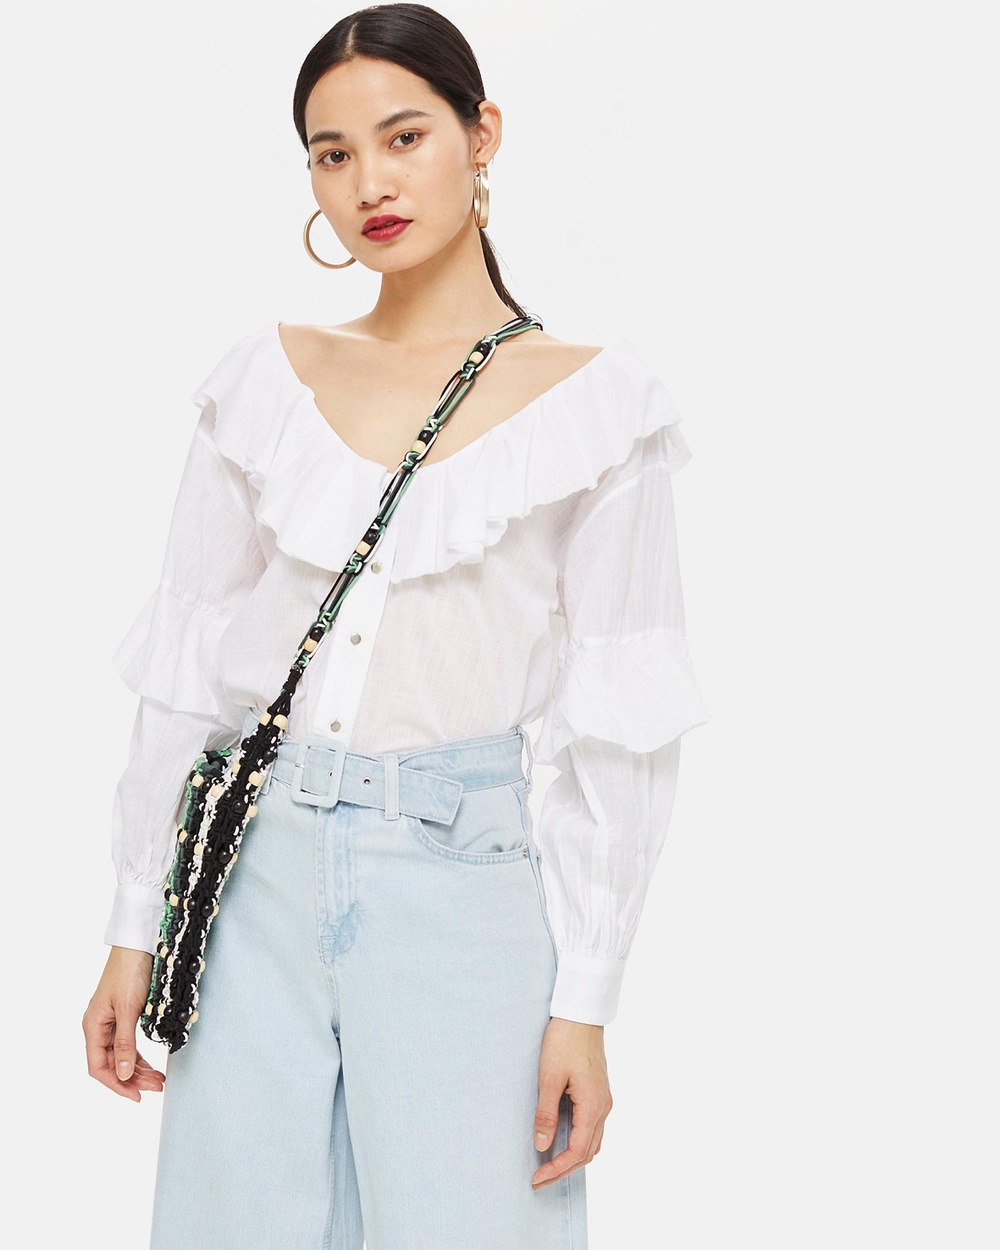 TOPSHOP Ruffle Down Button Blouse Tops Ivory Ruffle Down Button Blouse